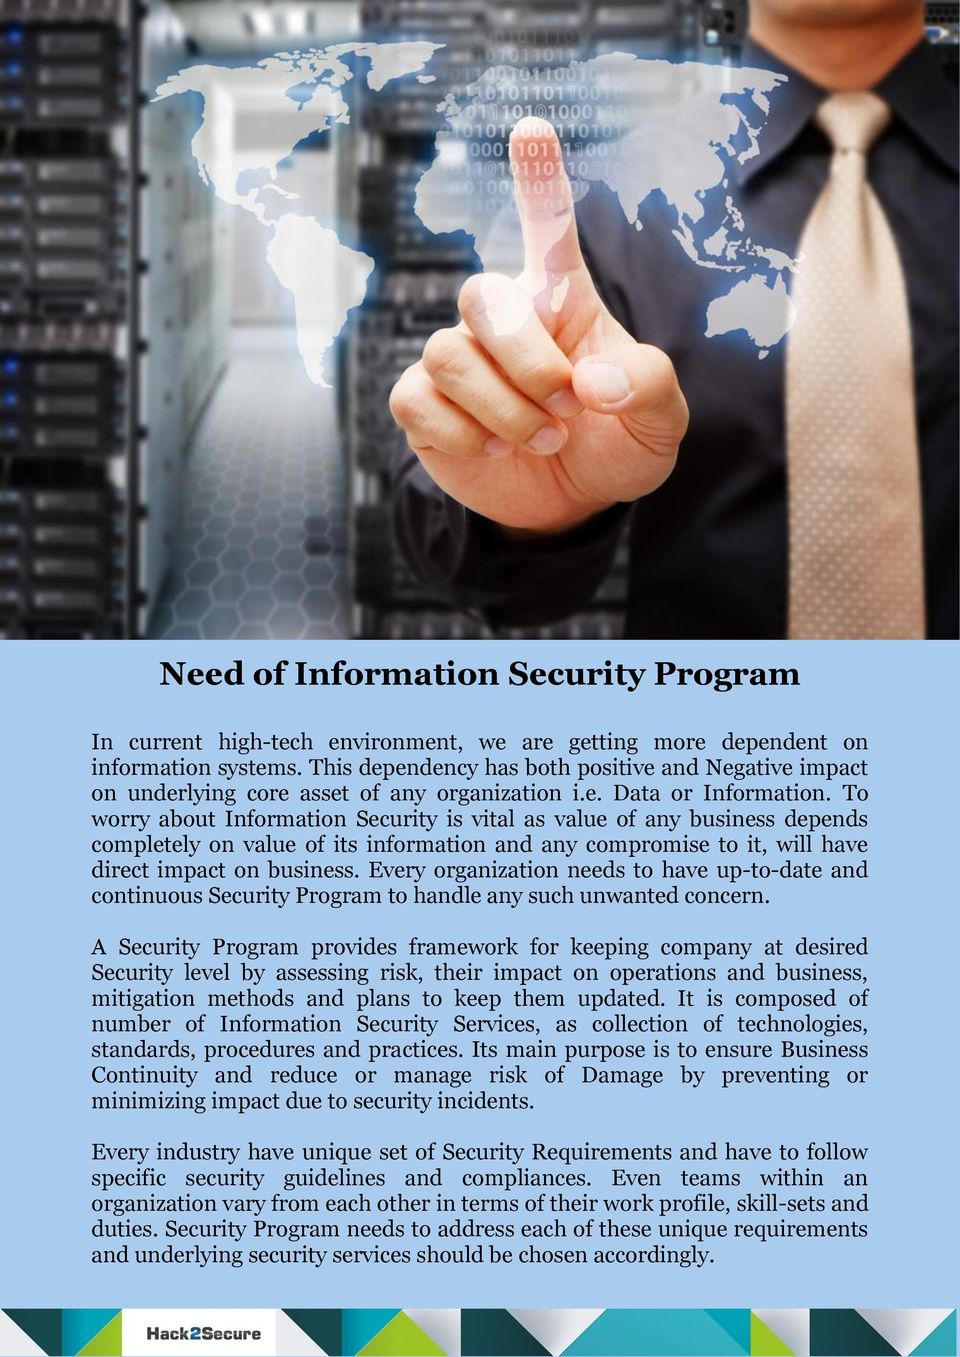 To worry about Information Security is vital as value of any business depends completely on value of its information and any compromise to it, will have direct impact on business.